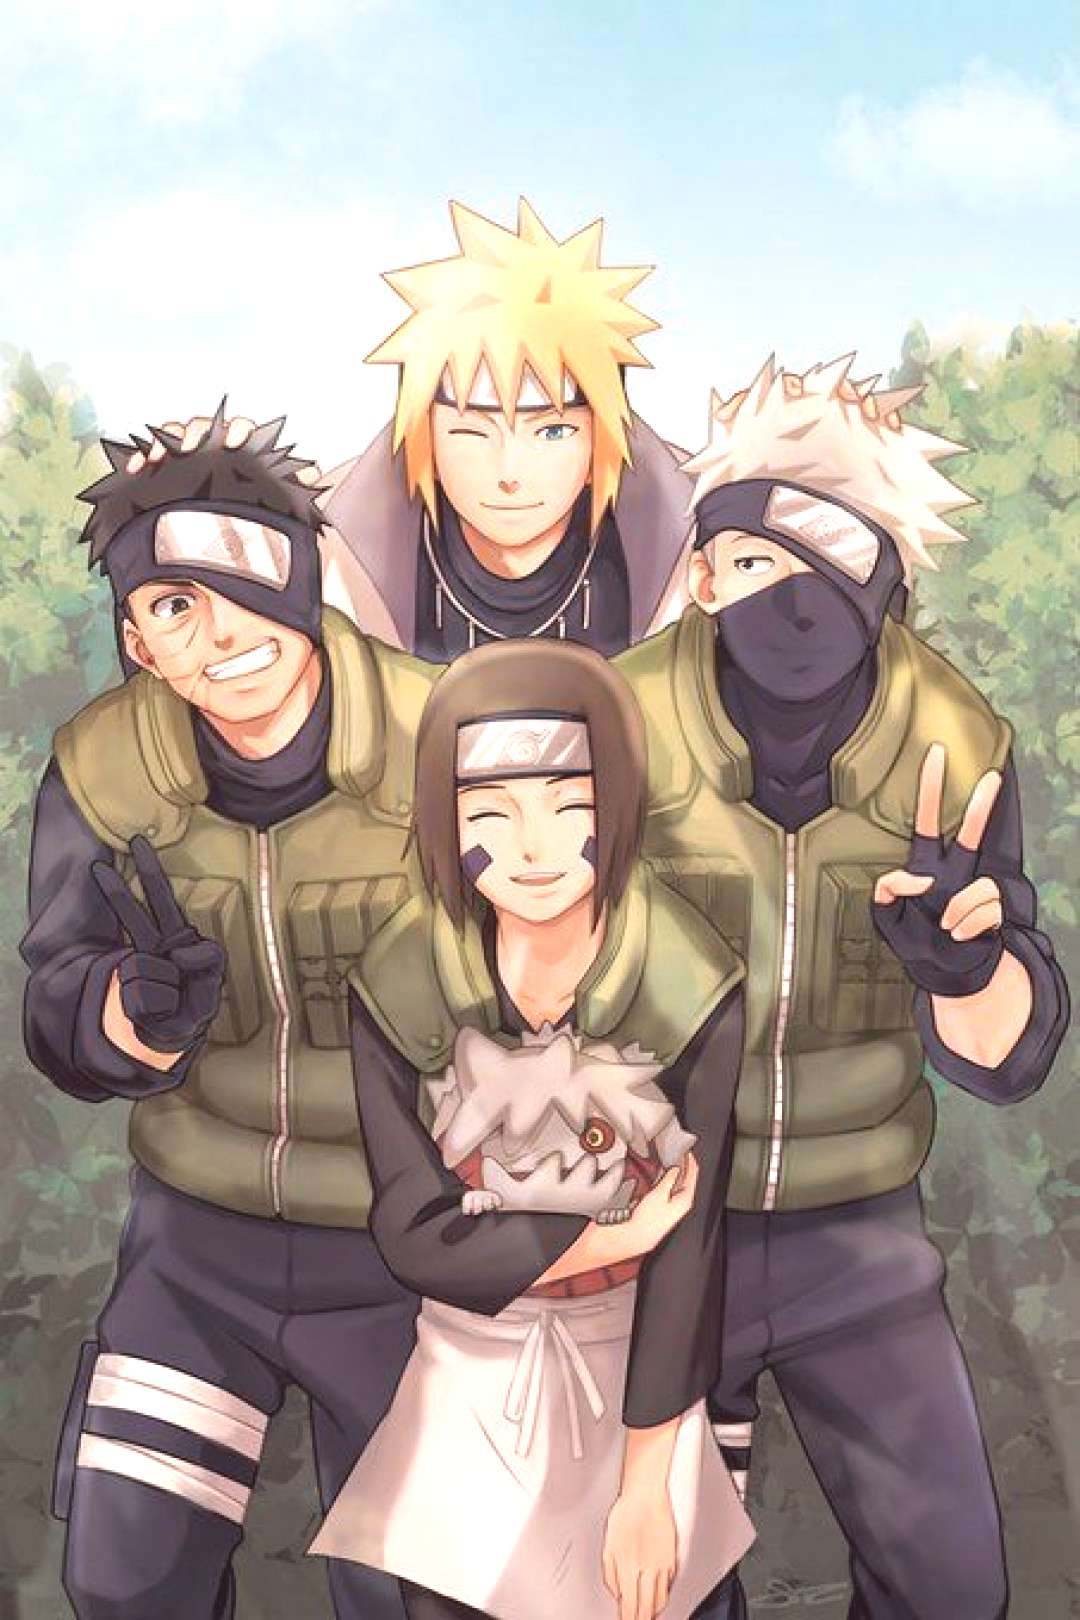 NARUTO - PICS - OI !!!!!! I SHOW PICTURES, GIFS AND MAY ALSO DRAWINGS HERE … Random amreading -